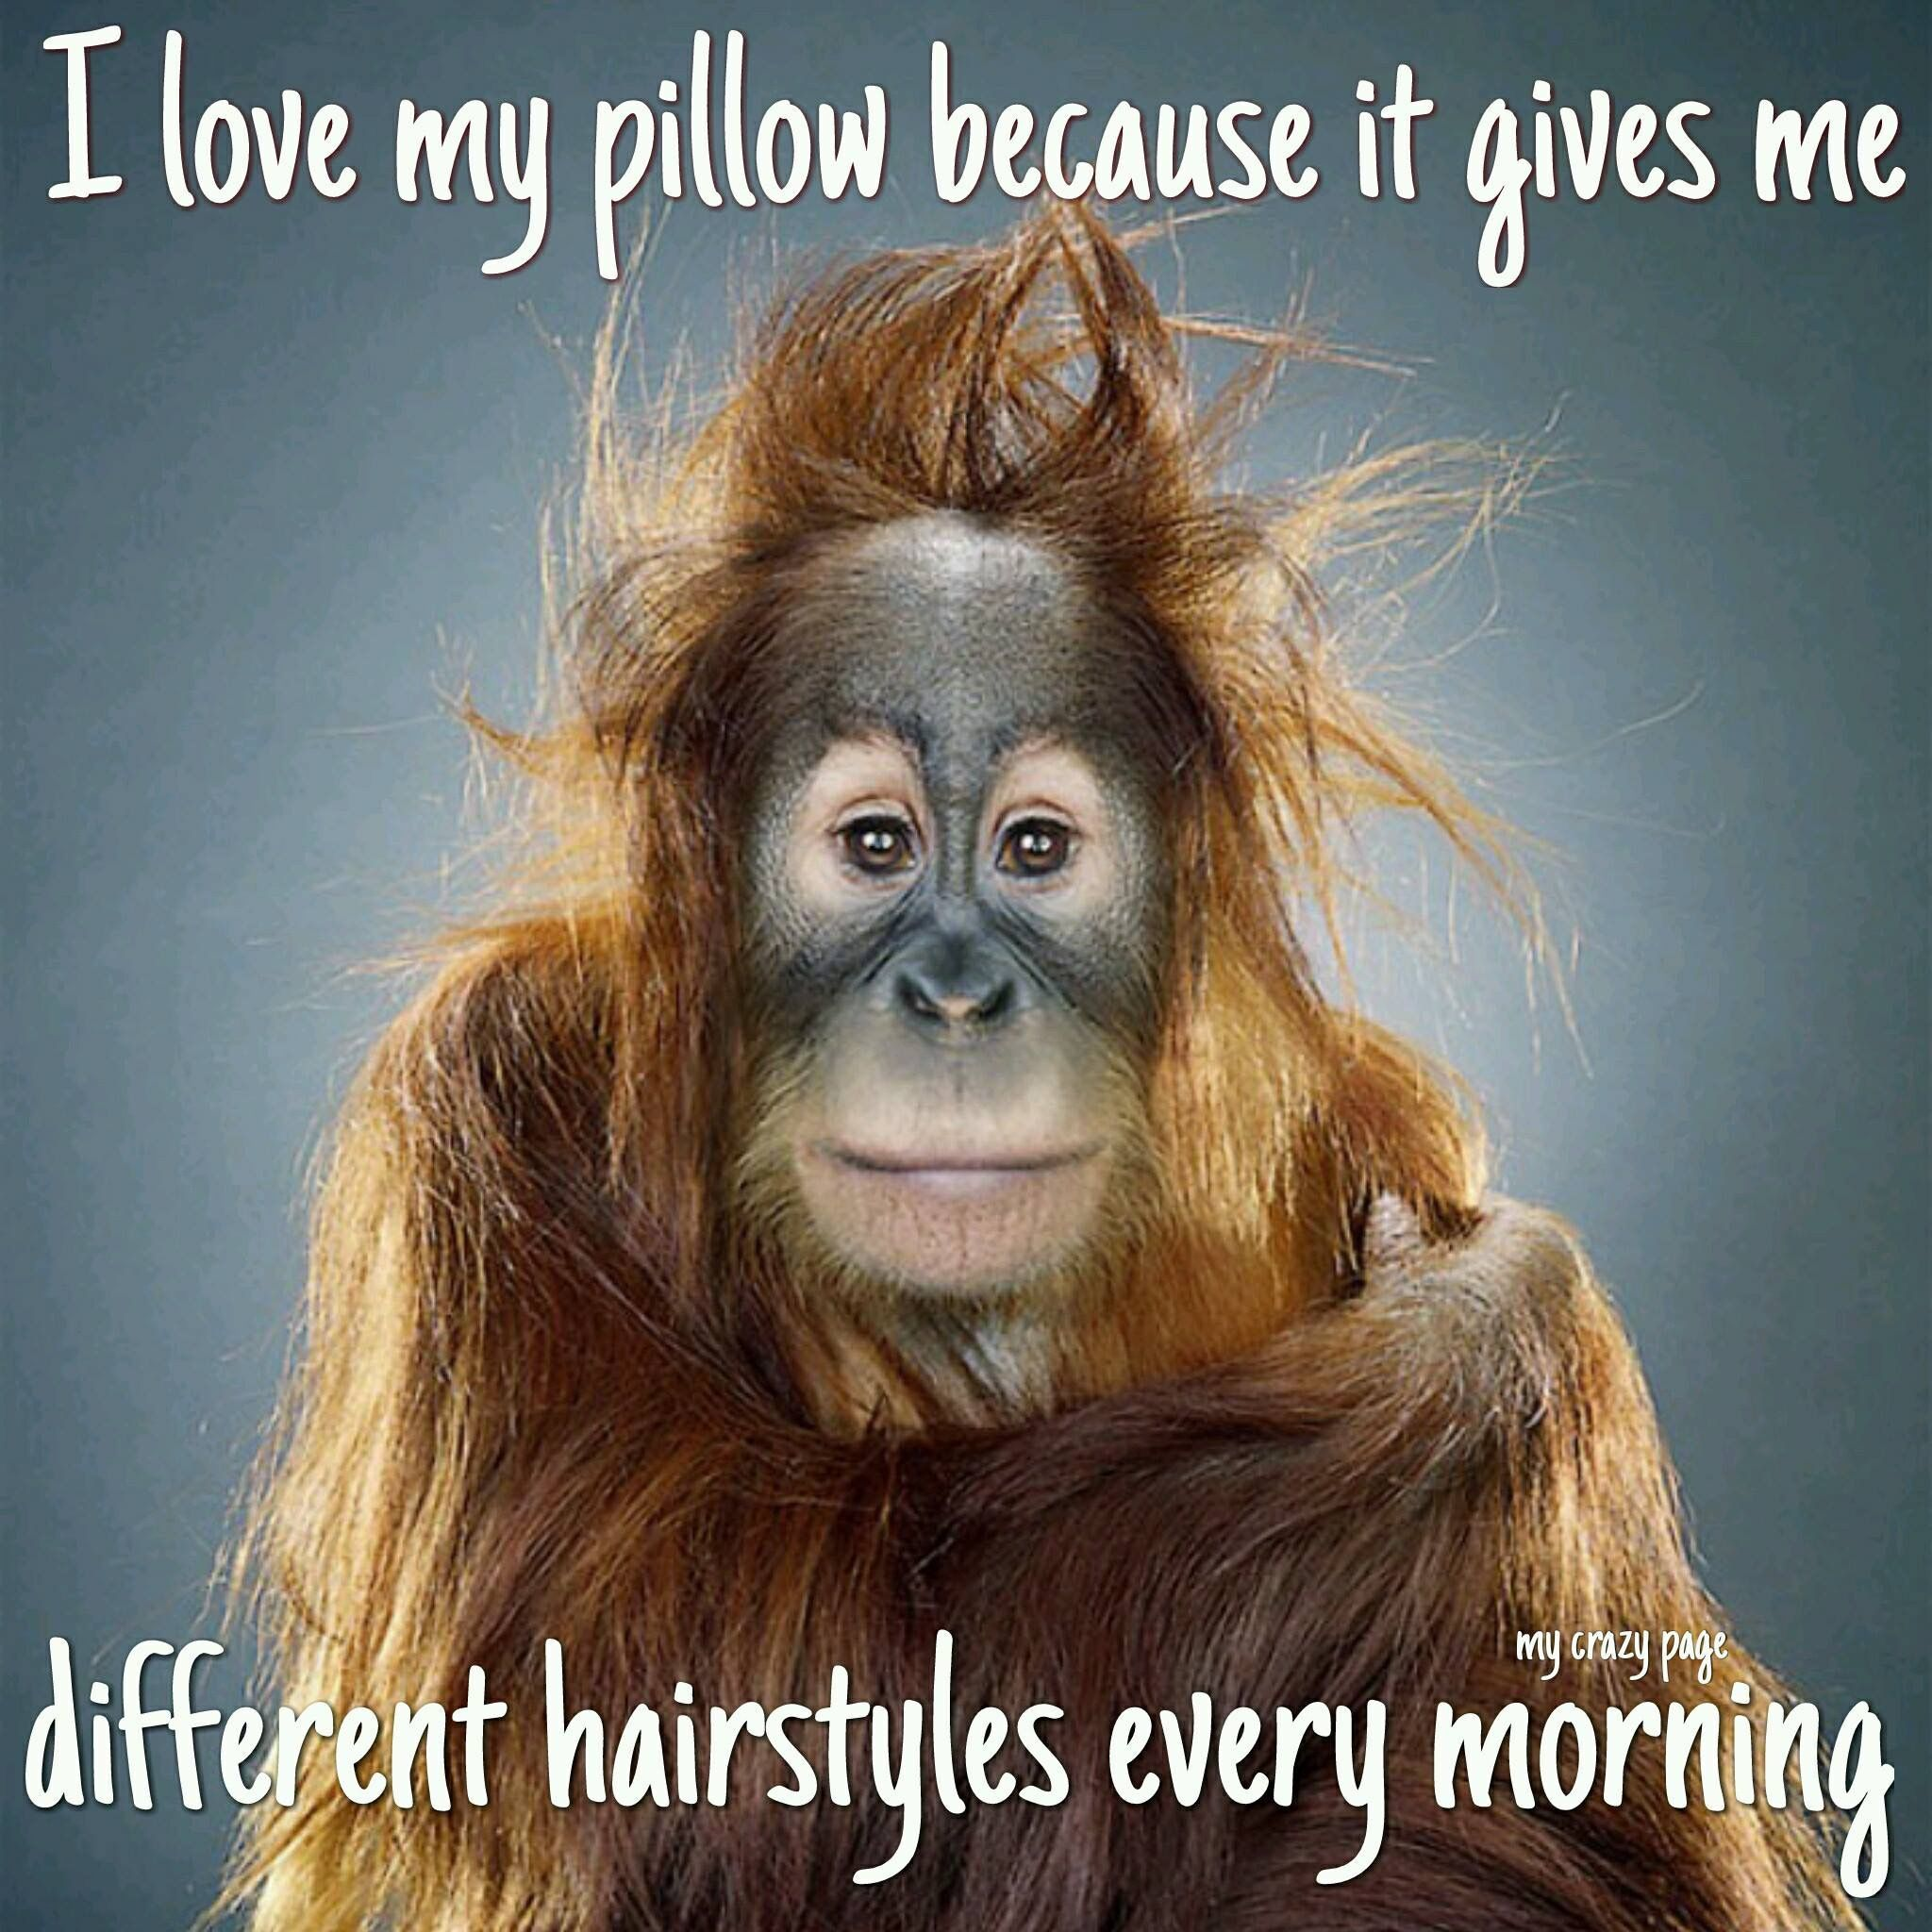 Pin By Linda Crews On Funny Pictures Morning Quotes Funny Funny Animal Faces Funny Good Morning Memes